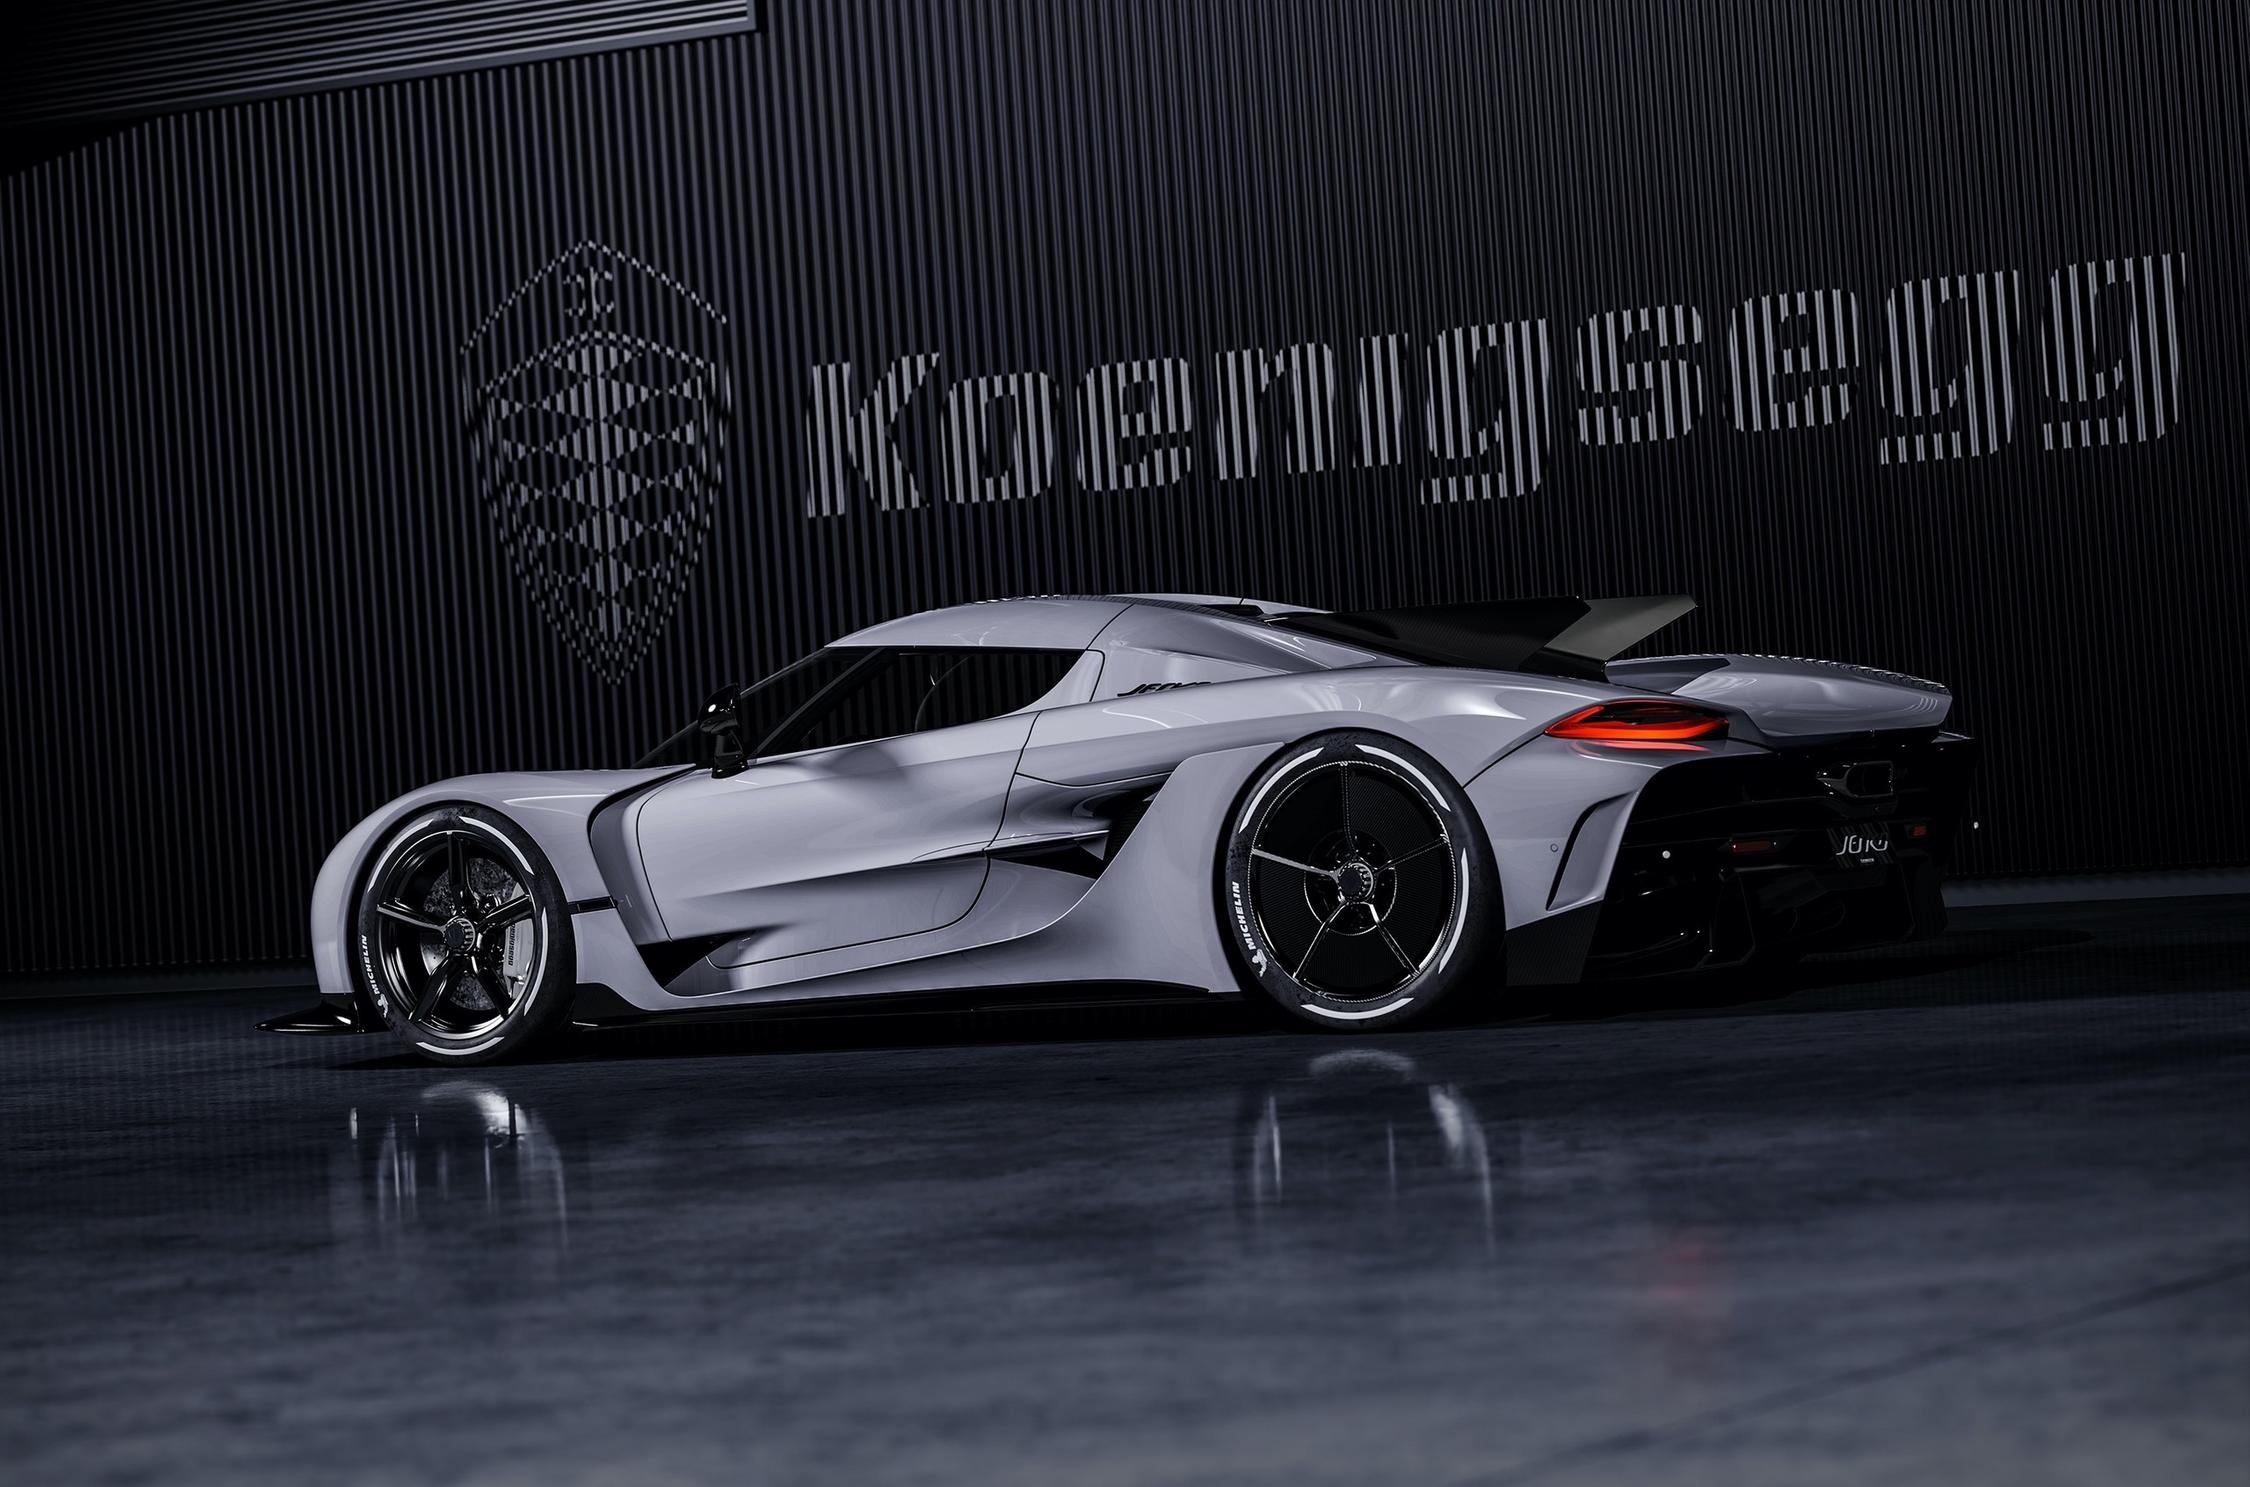 When it unveiled the Jesko Absolut hypercar this spring (featured in our gallery), Koenigsegg said it would forever remain its fastest road-legal vehicle. Today, the Swedish automaker announced a new car that is specifically not road-legal.